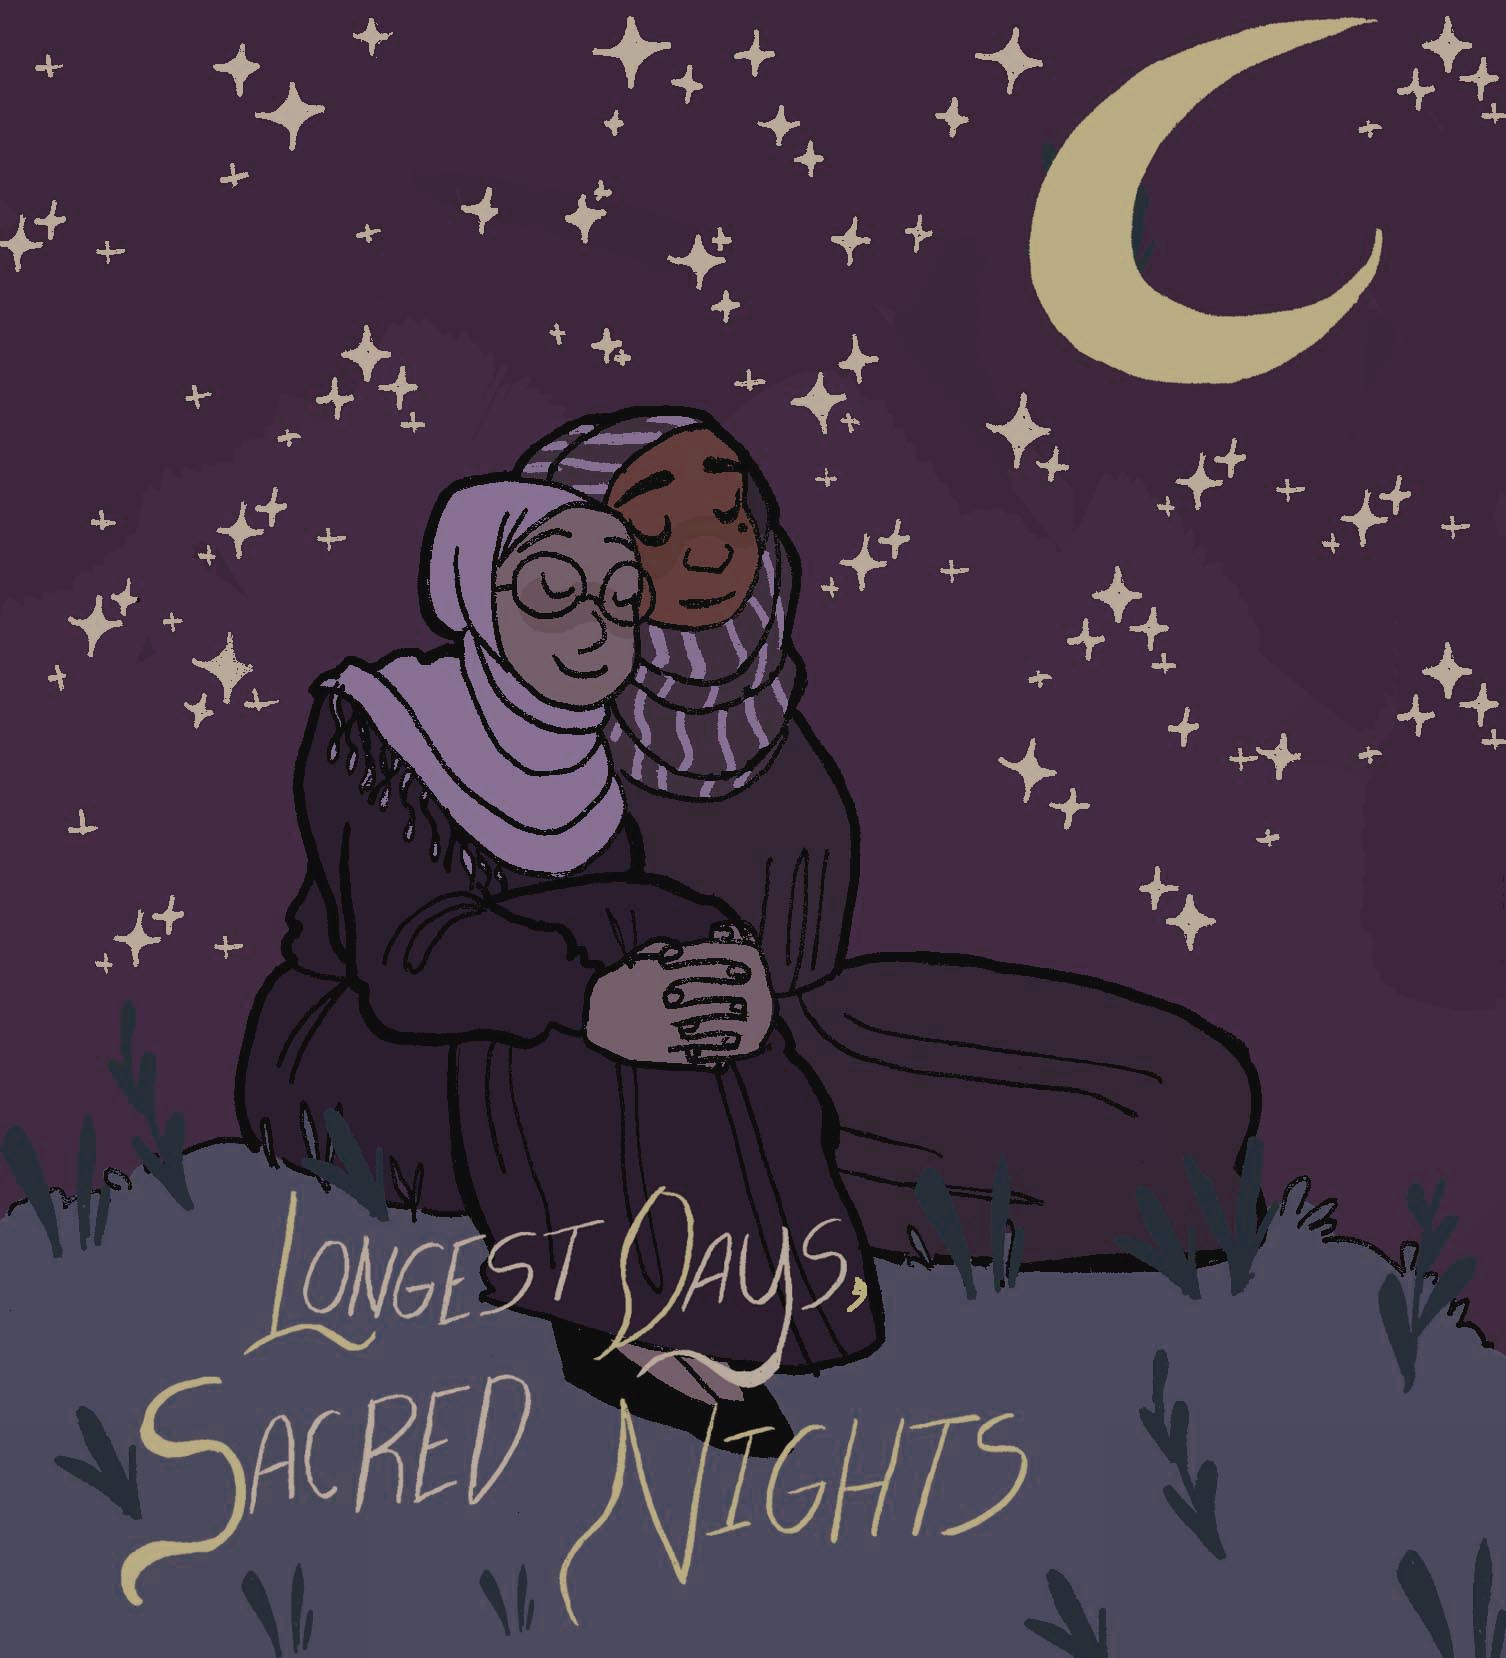 LGBTQ Muslim Youth: We are here for YOU - This Ramadan, Masjid al-Rabia is partnering with LGBTQ Youth organization Everyone is Gay to put together an ENTIRE MONTH of Ramadan programming for LGBTQIA+ Muslim youth.